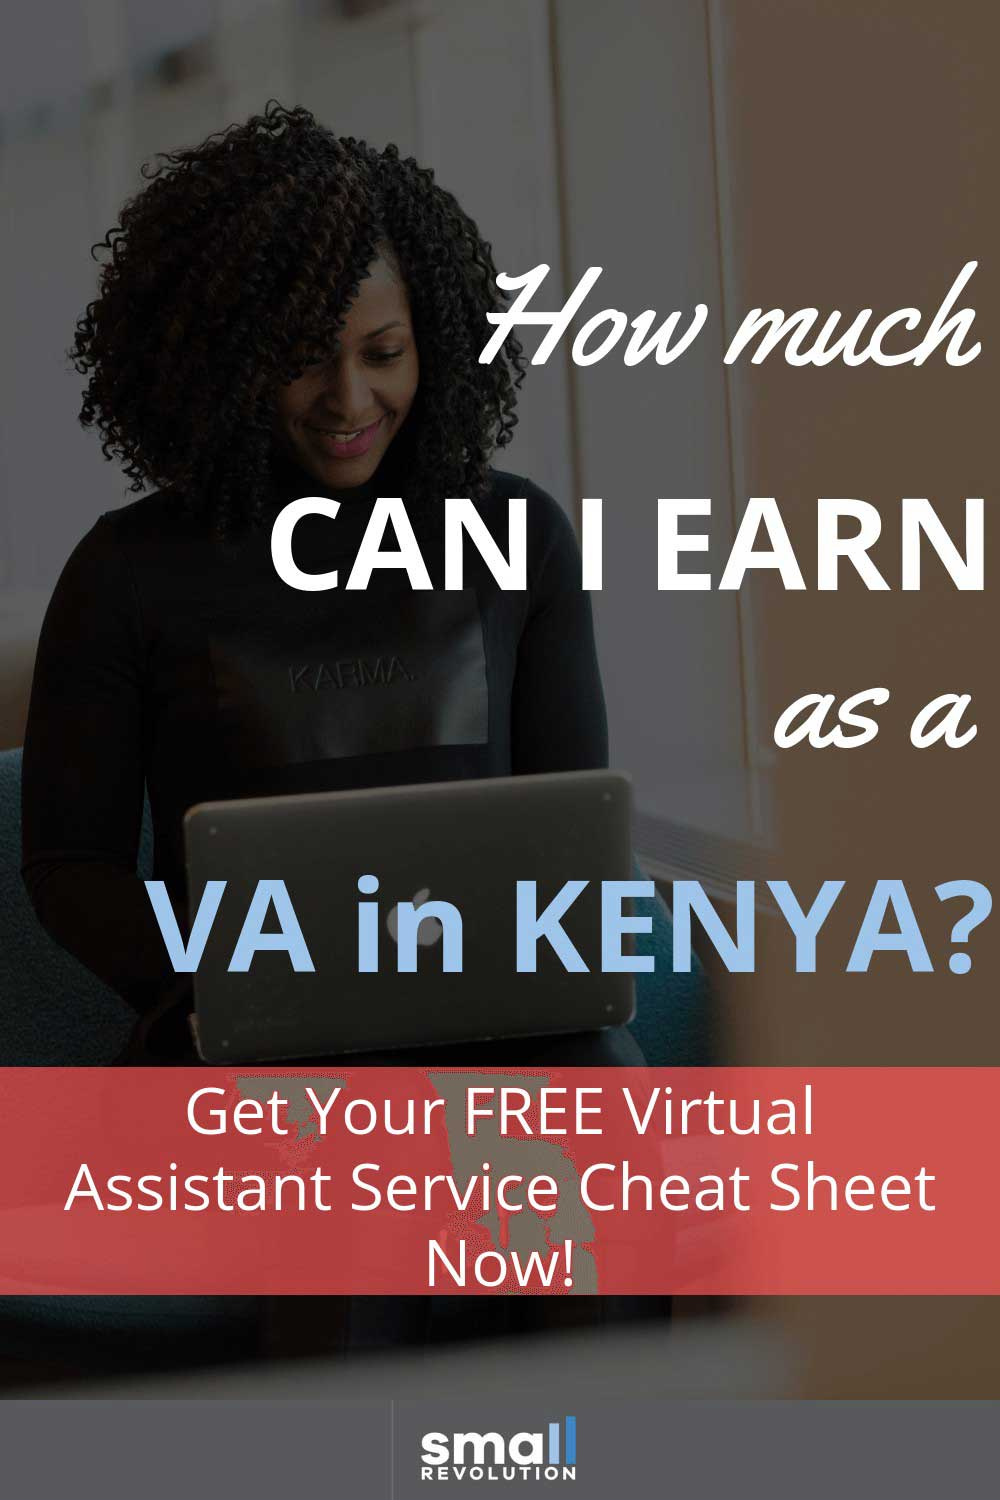 How much can I earn as a VA in Kenya